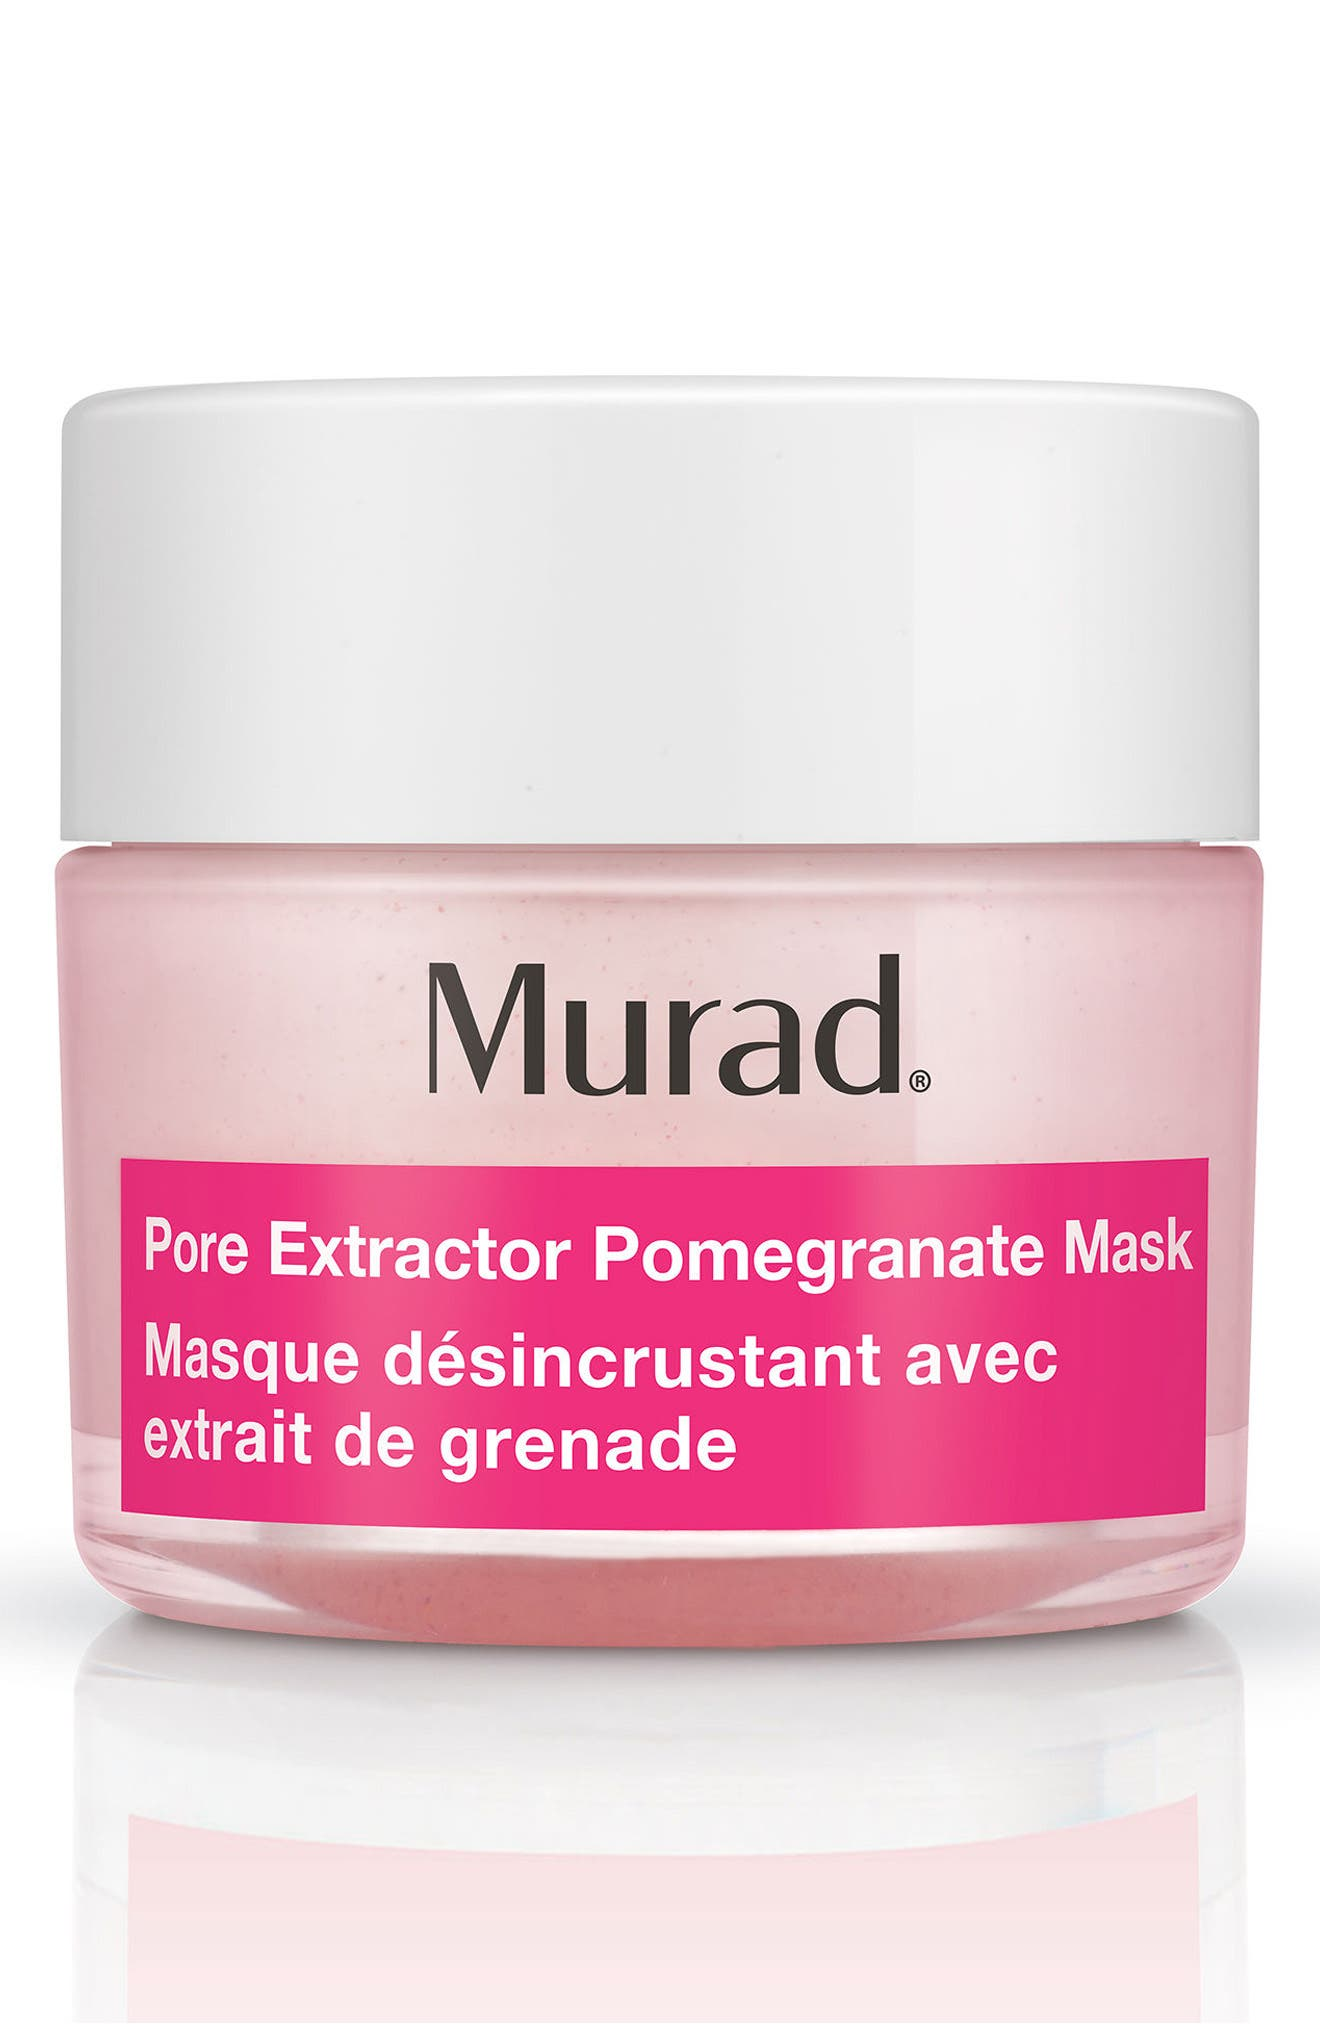 Alternate Image 1 Selected - Murad® Pore Extractor Pomegranate Mask